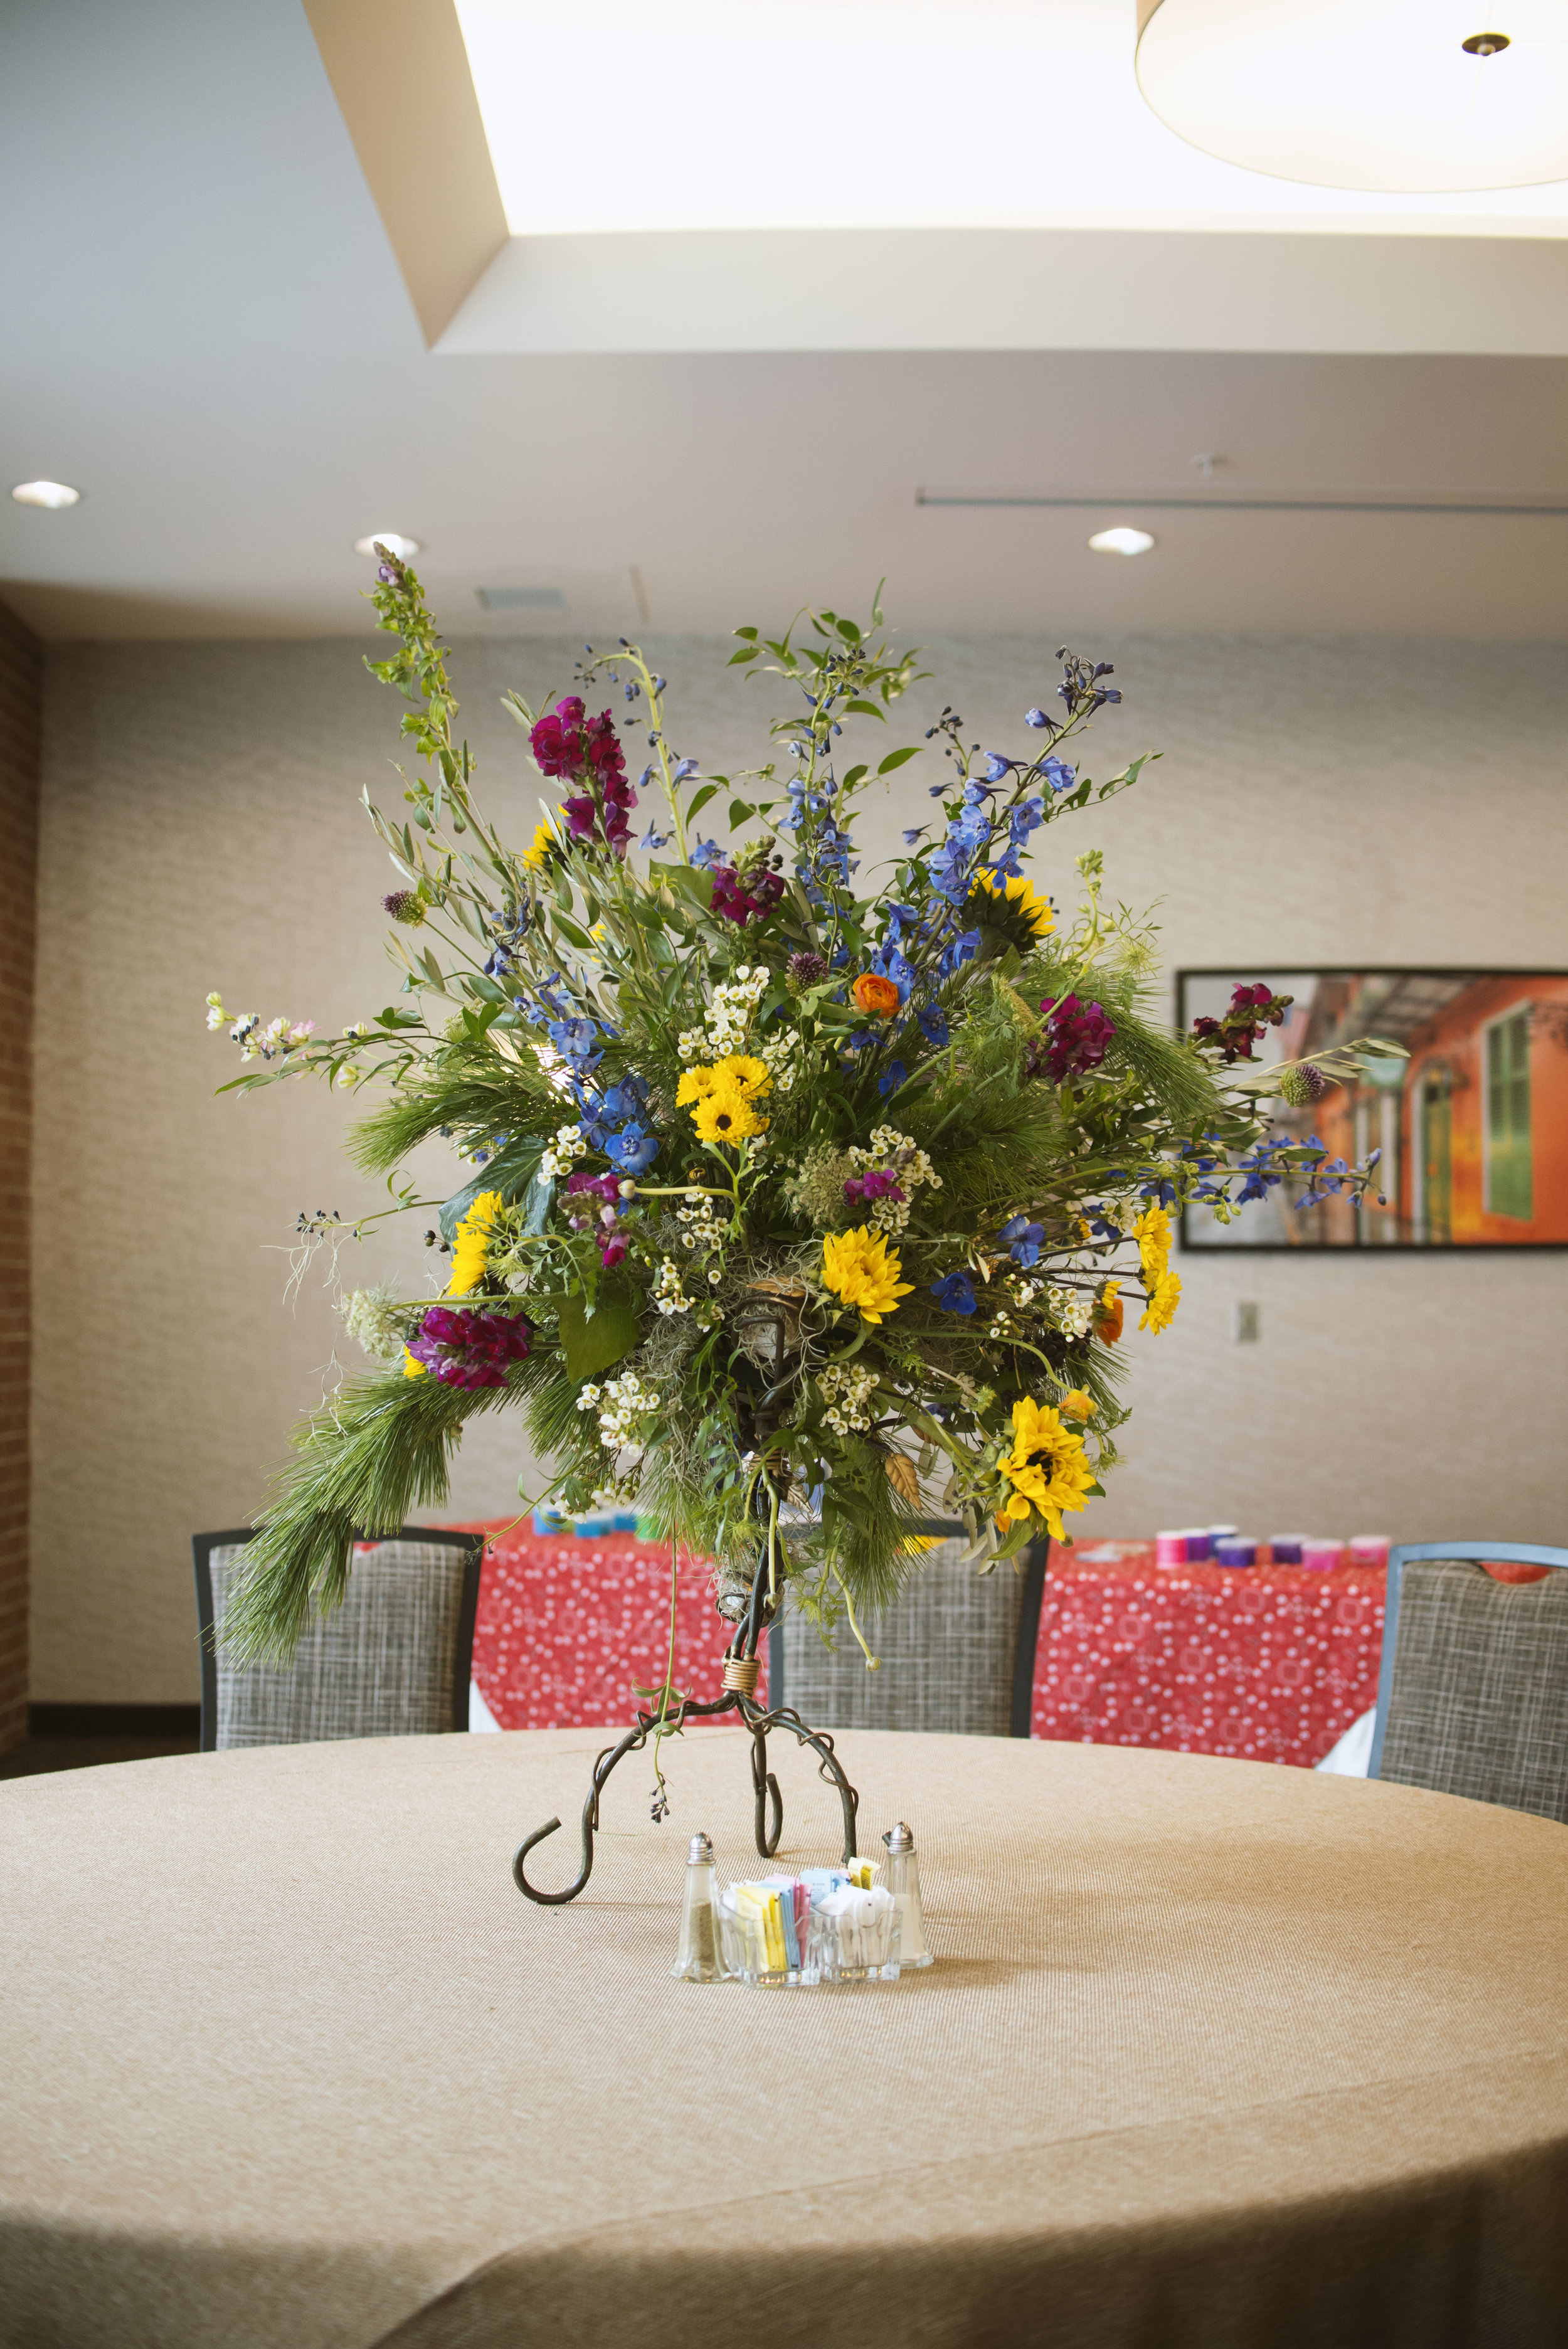 3 mitchs flowers denys mertz stephanine tarrant bat mitzvah flowers bar mitzvah celebration flowers arrangement centerpiece new orleans florist flowers weding elopement birthday party .jpg